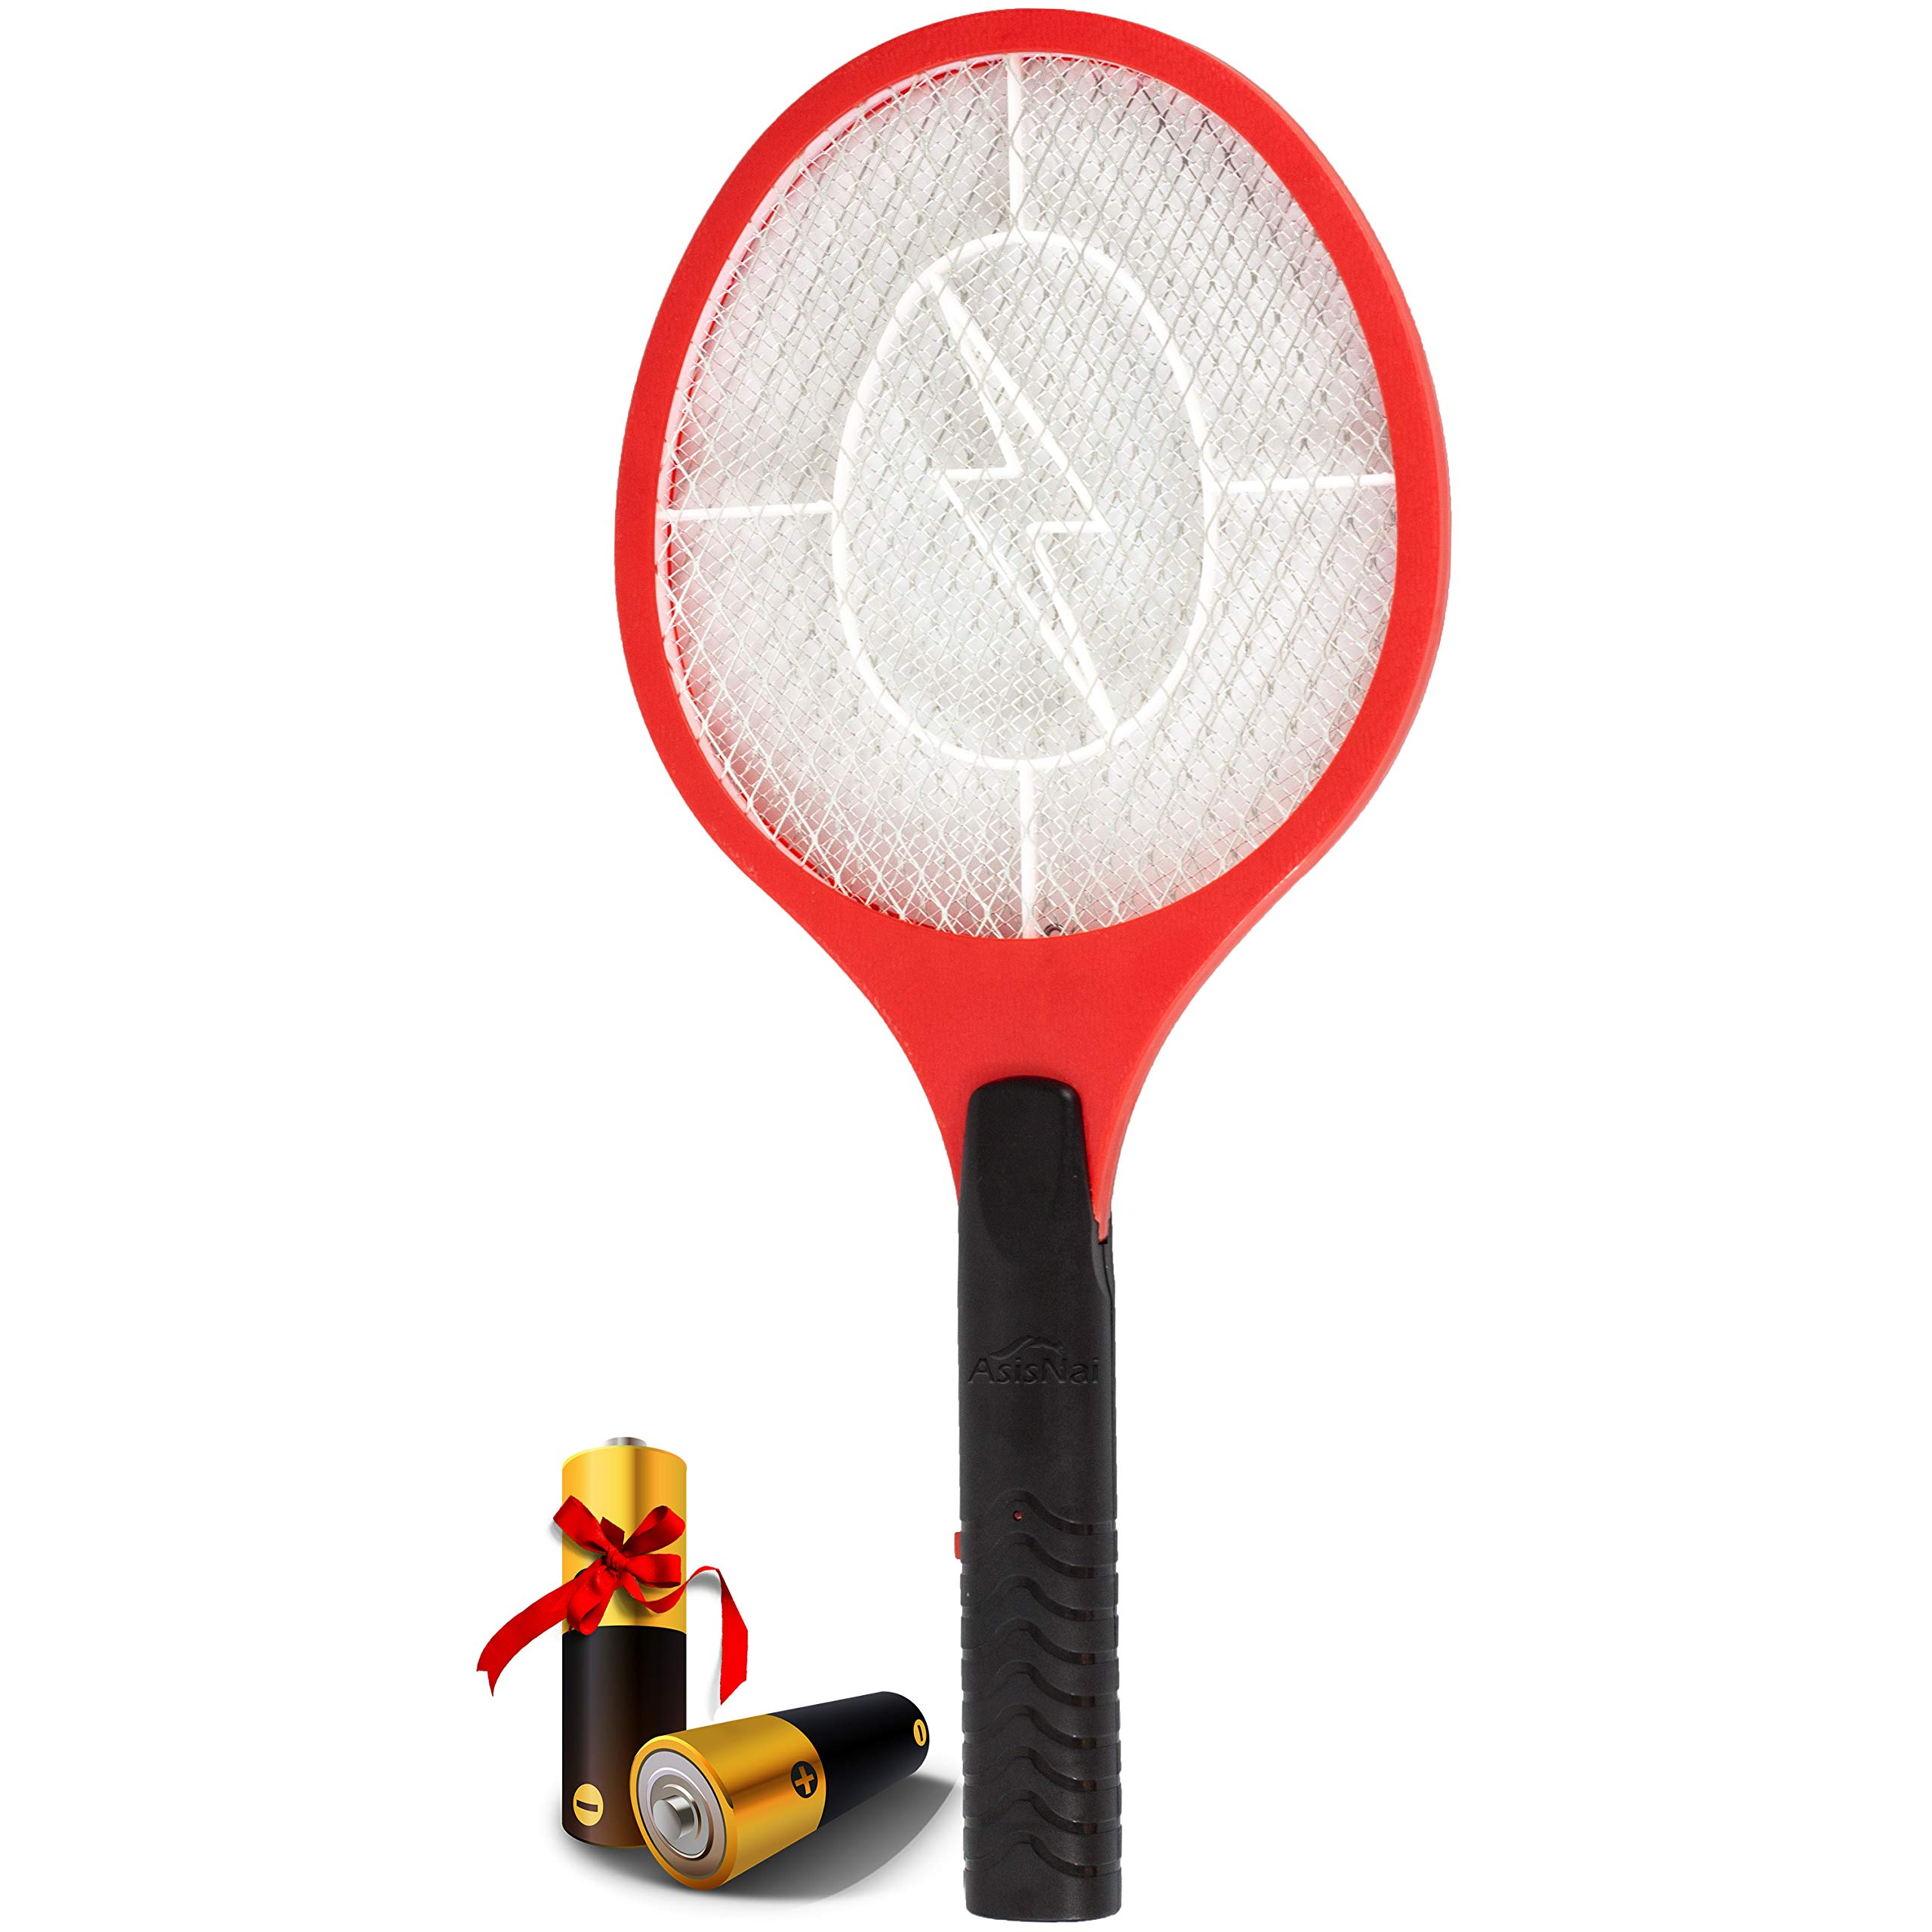 AsisNai Electric Fly Swatter Bug Zapper Mosquito Killer - 3000 Volt Zap Racket, Will Even Kill Cockroaches. Made from Durable Materials for Indoors and Outdoors. Red and Black - Incl. 2 Batteries by Asisnai